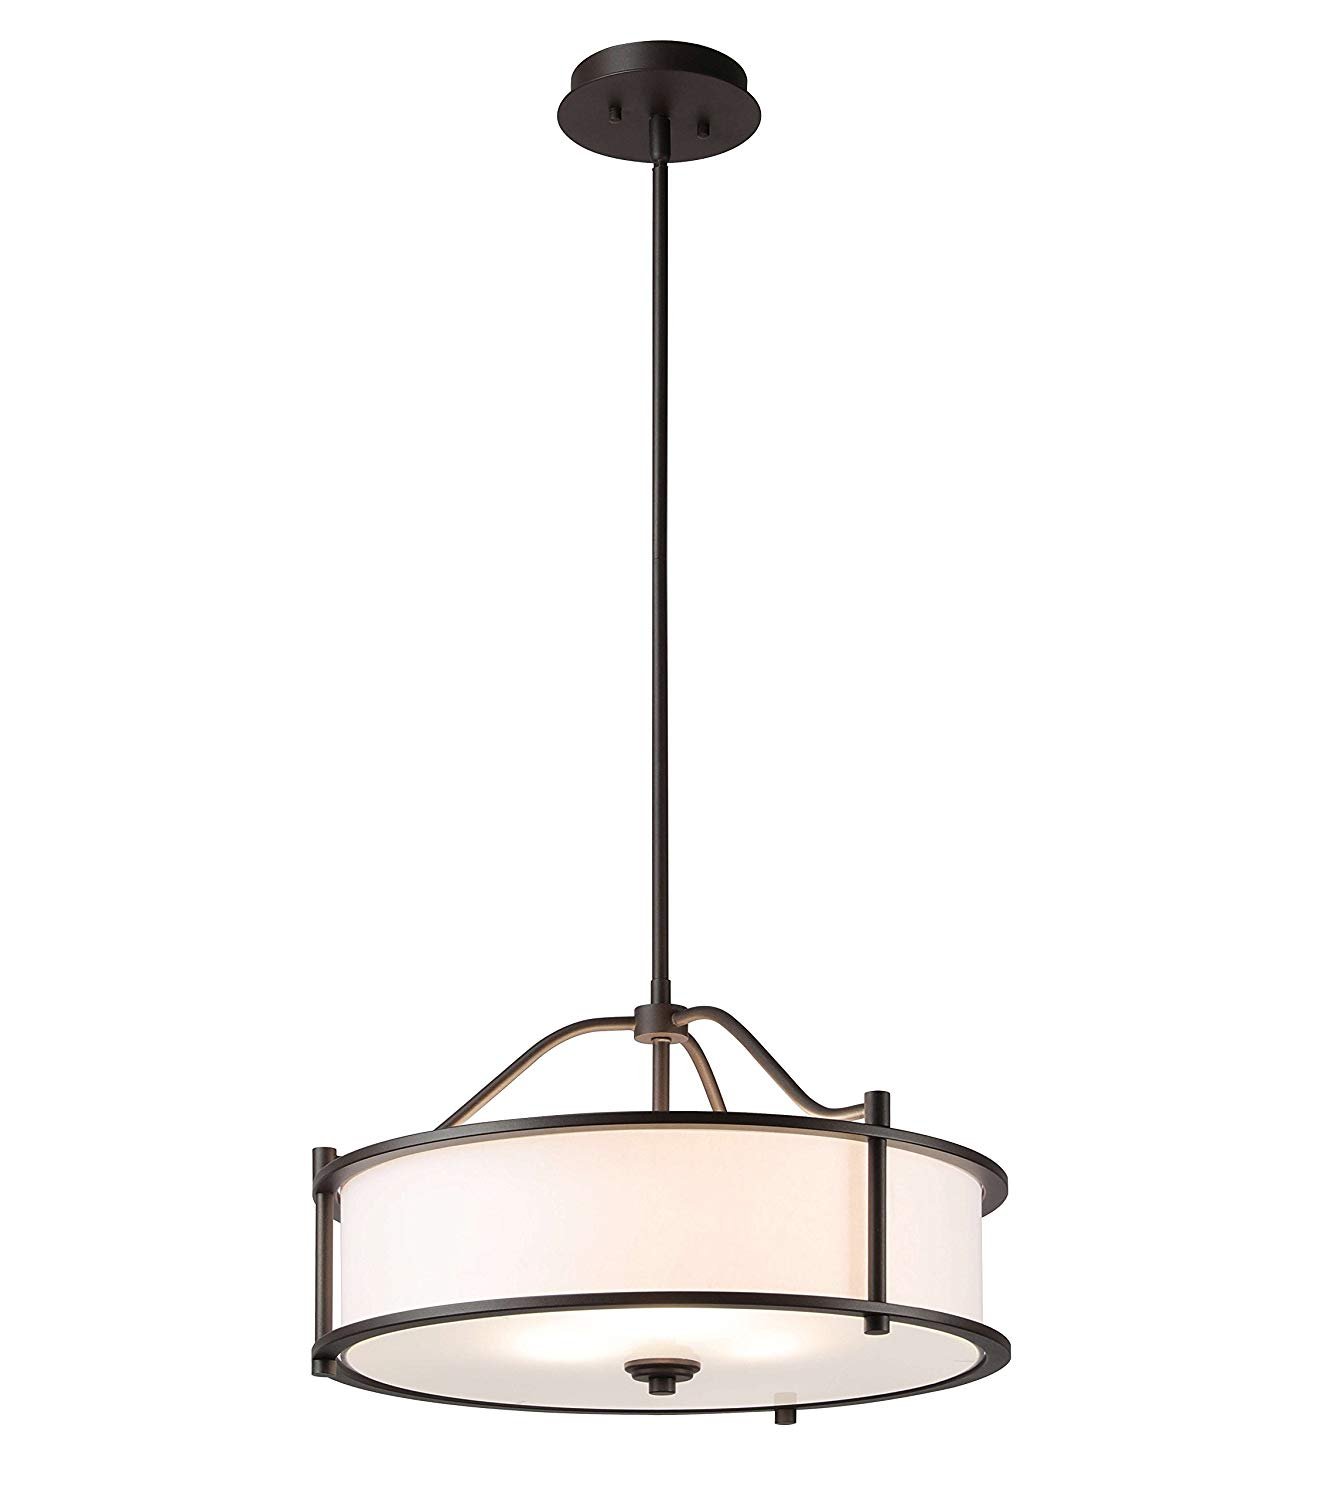 Get Quotations Pendant Lighting 18 Inch 3 Light Drum With Fabric Shade And Gl Diffuser In